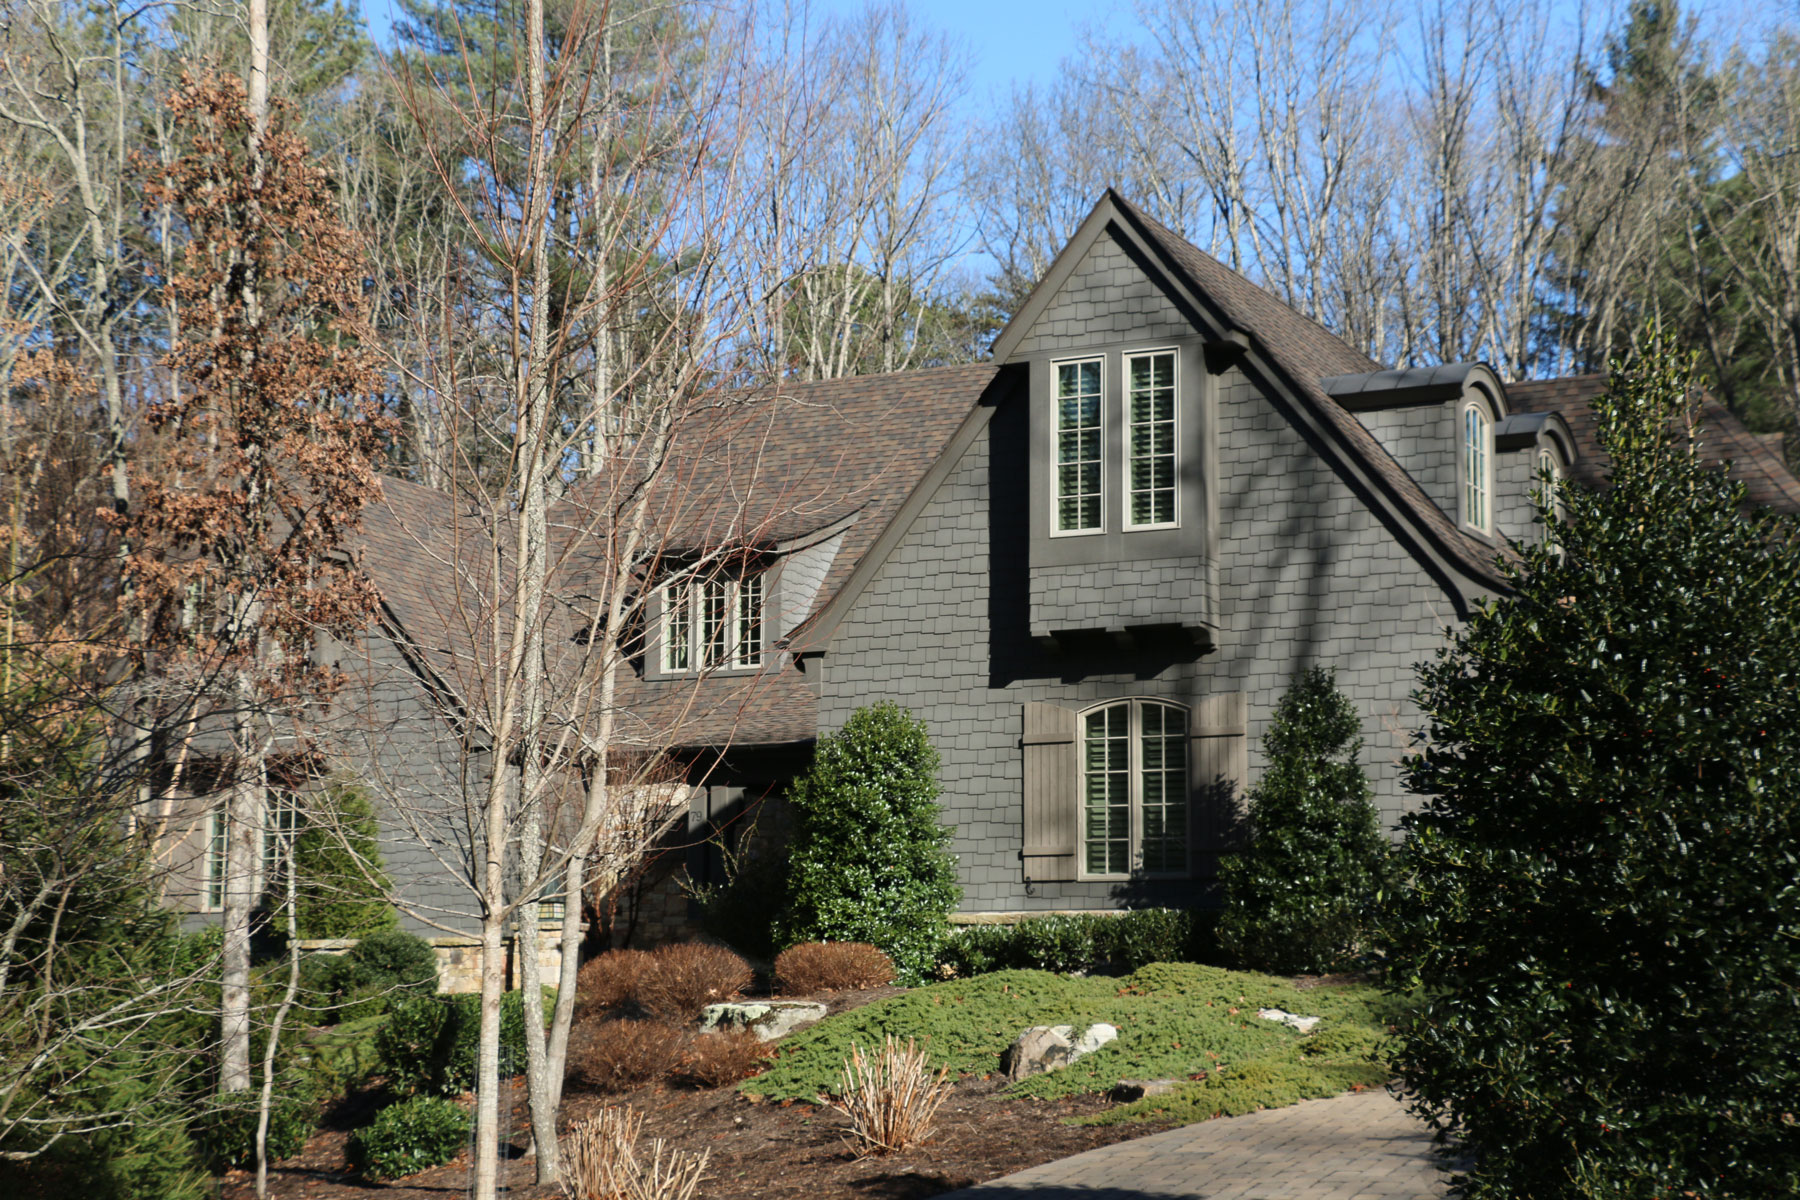 English Manor Style Shingle Home in Asheville